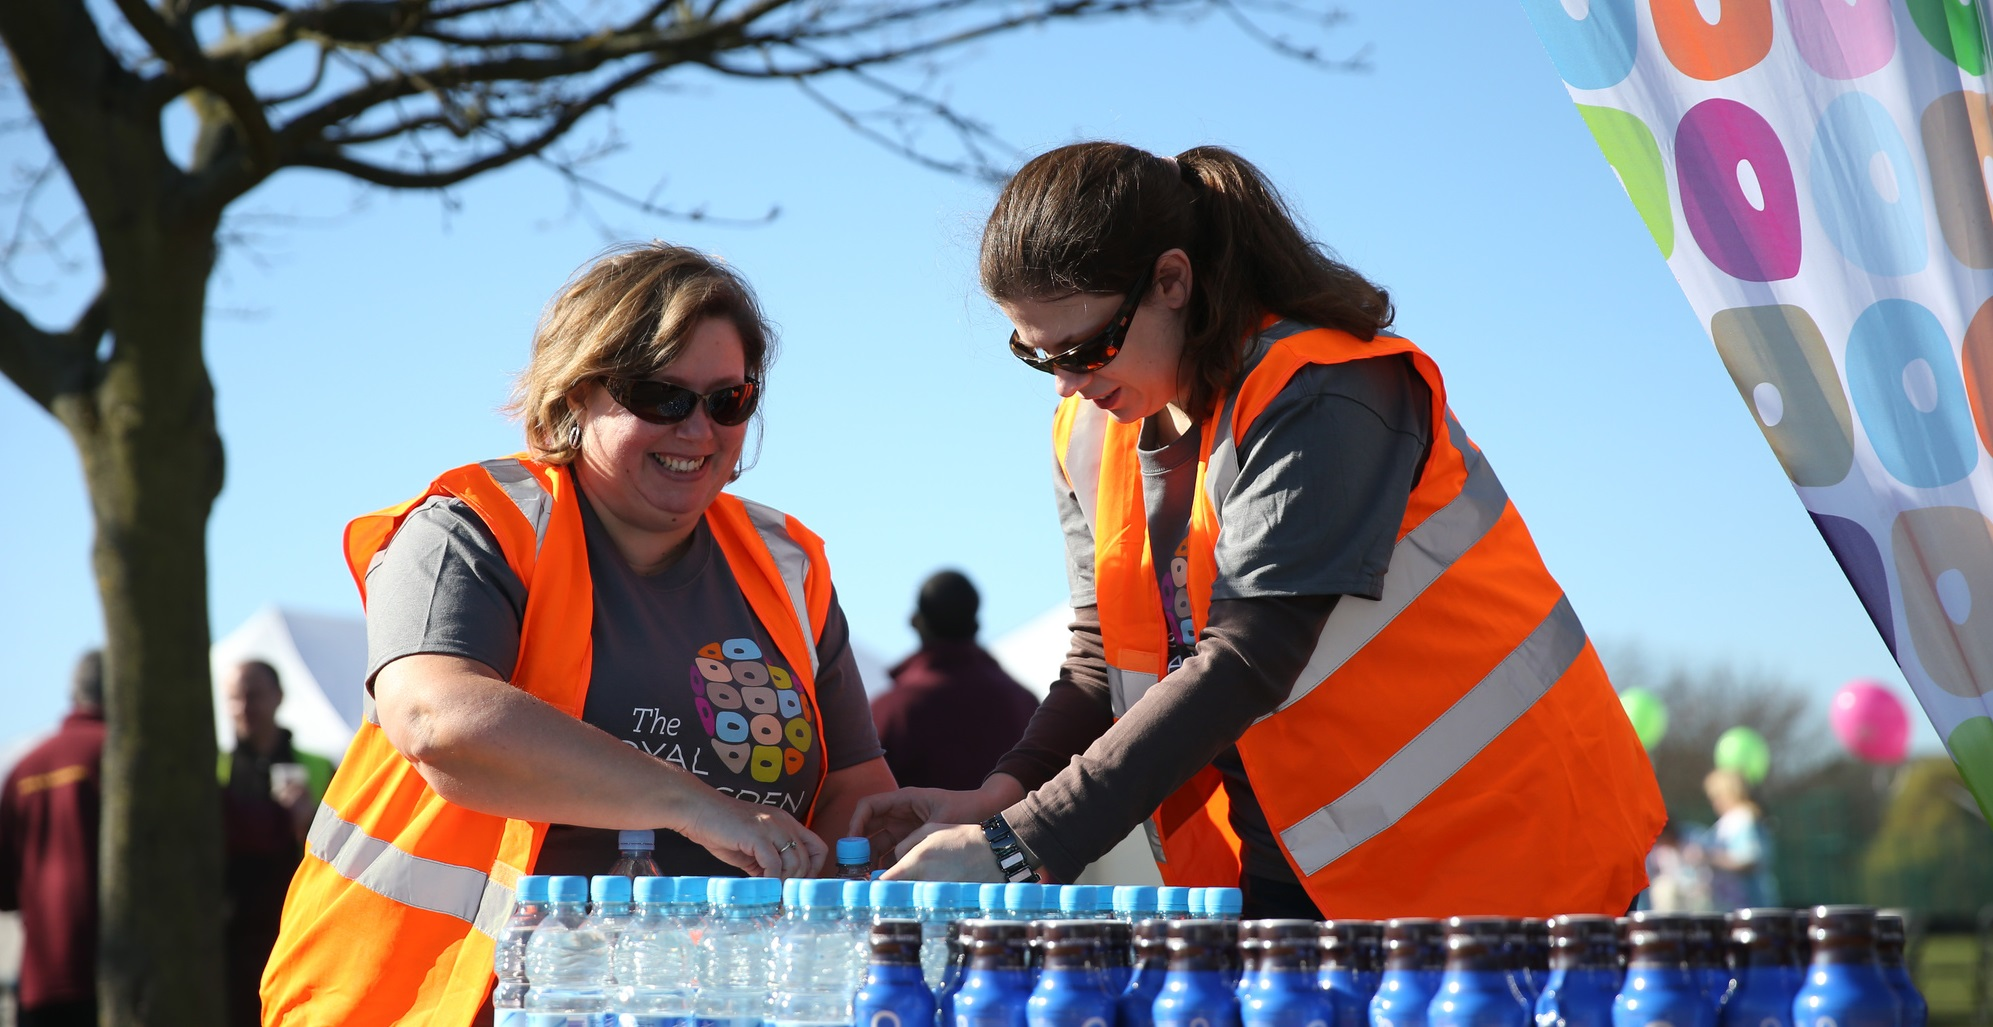 Volunteers on a refreshments stand